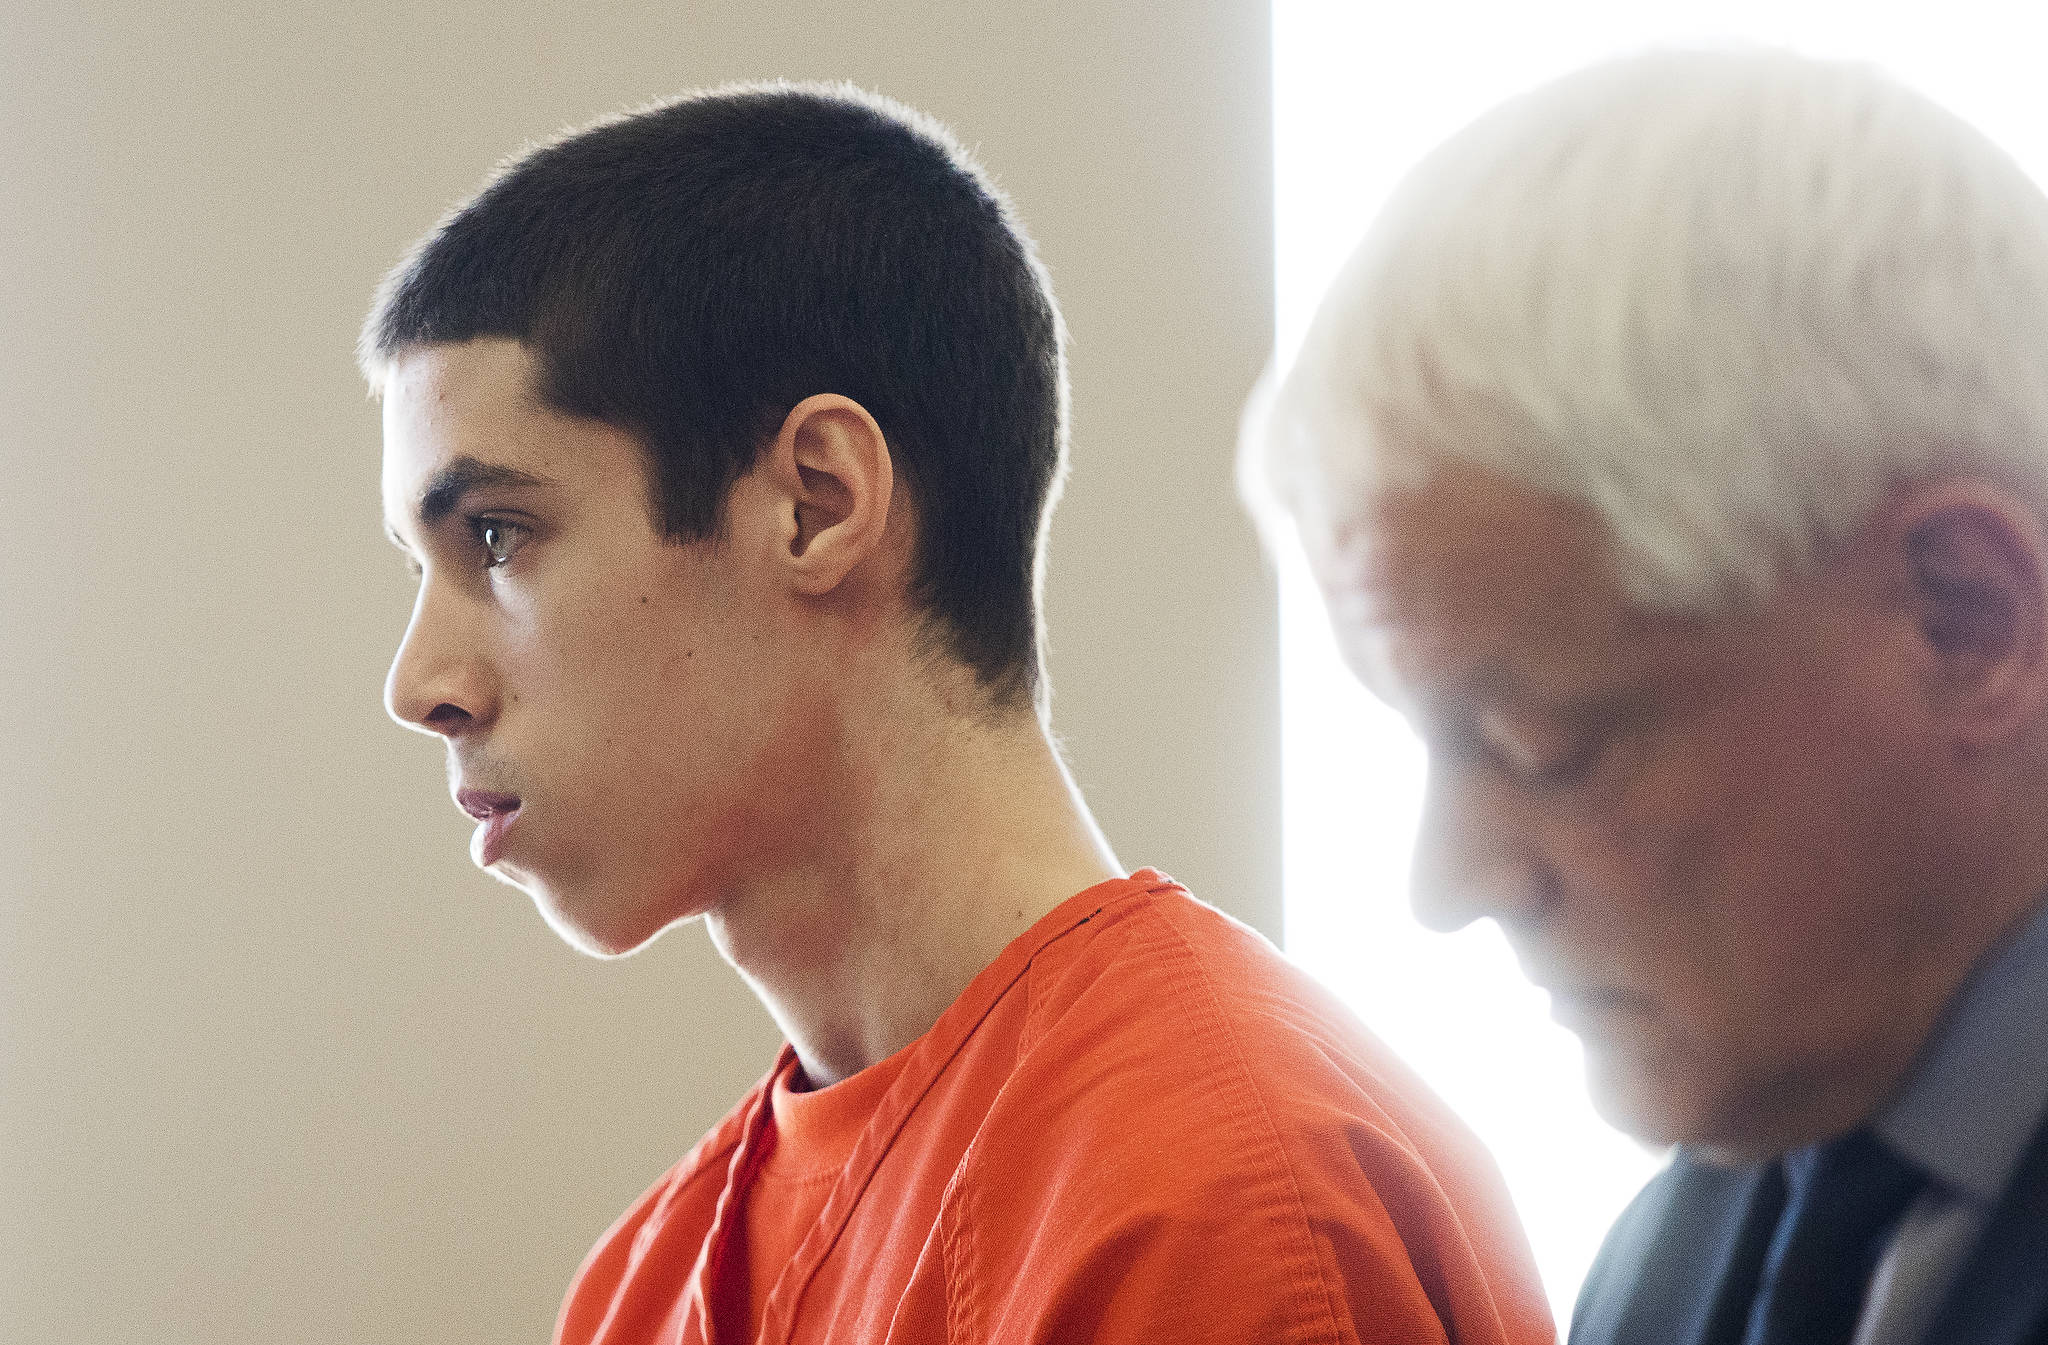 Timothy Puller is sentenced for the death of Gala Zuehlke, in the Snohomish County Courthouse on Thursday in Everett. (Andy Bronson / The Herald)